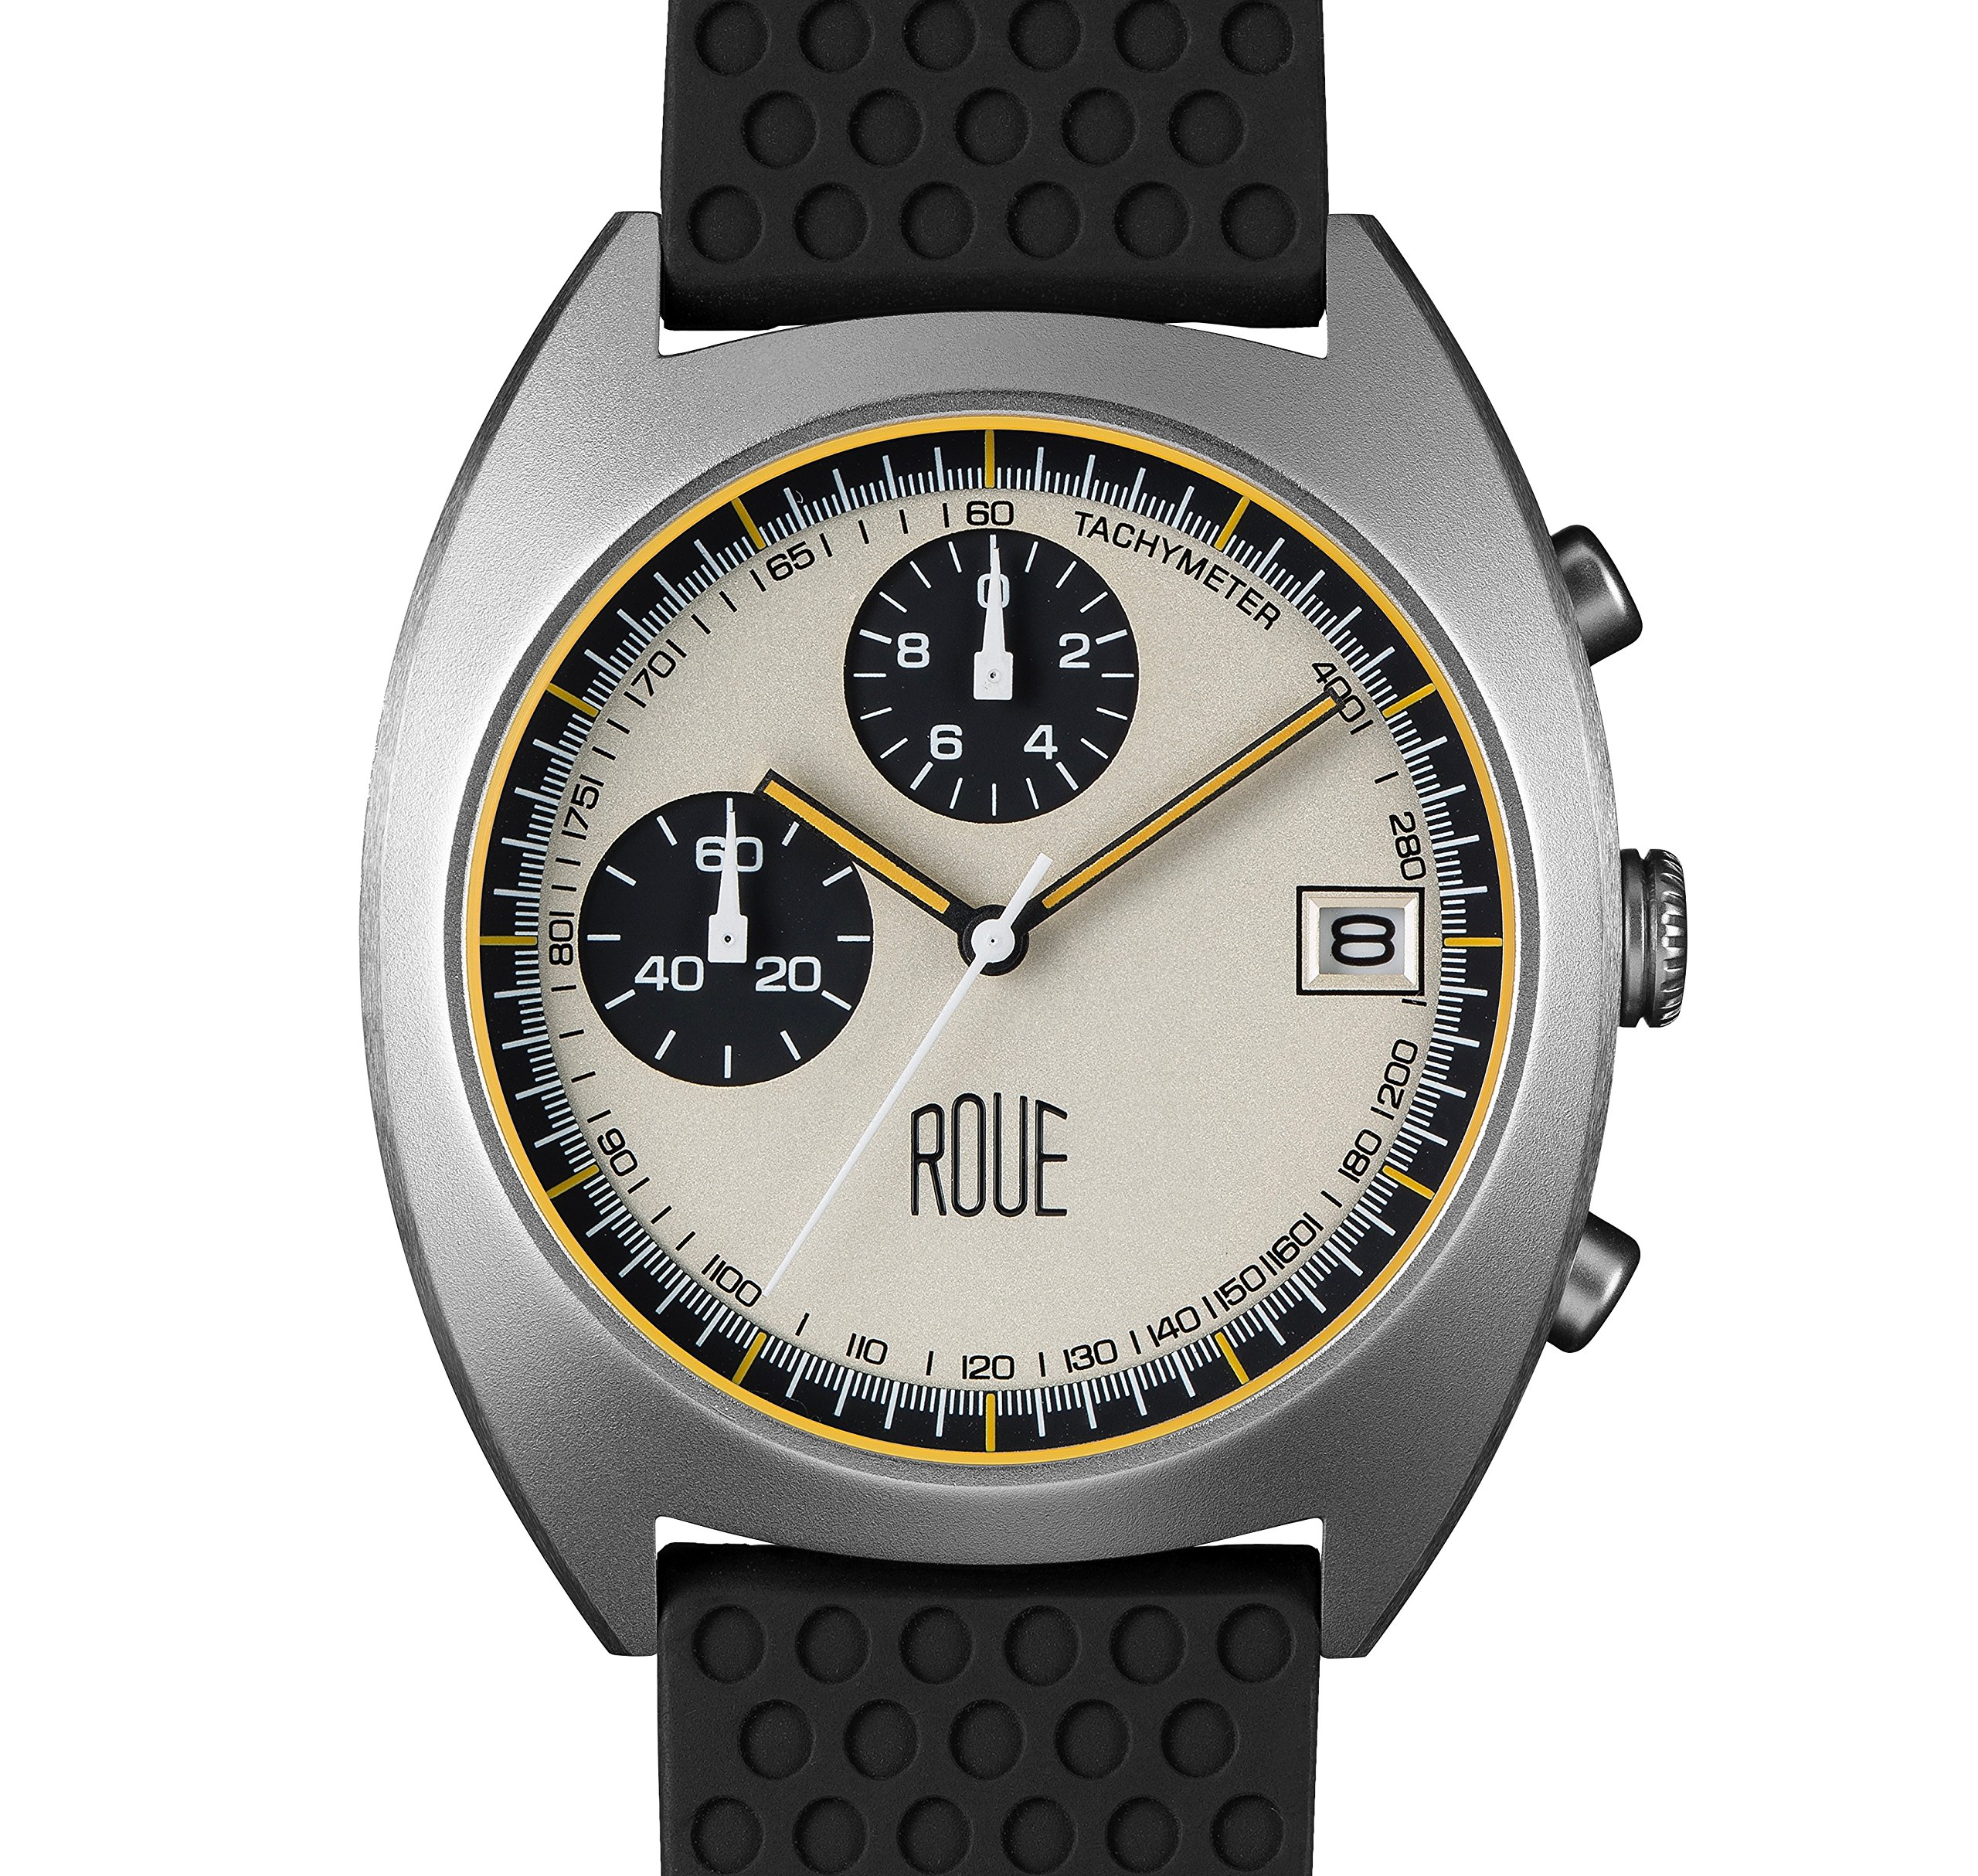 ROUE CHR Three Chronograph Watch, 1970s Racing Style, 41.5mm Sand Blasted Stainless Steel case, Silicone + Soft Leather Straps, Sapphire Crystal with anti-reflective treatment glass